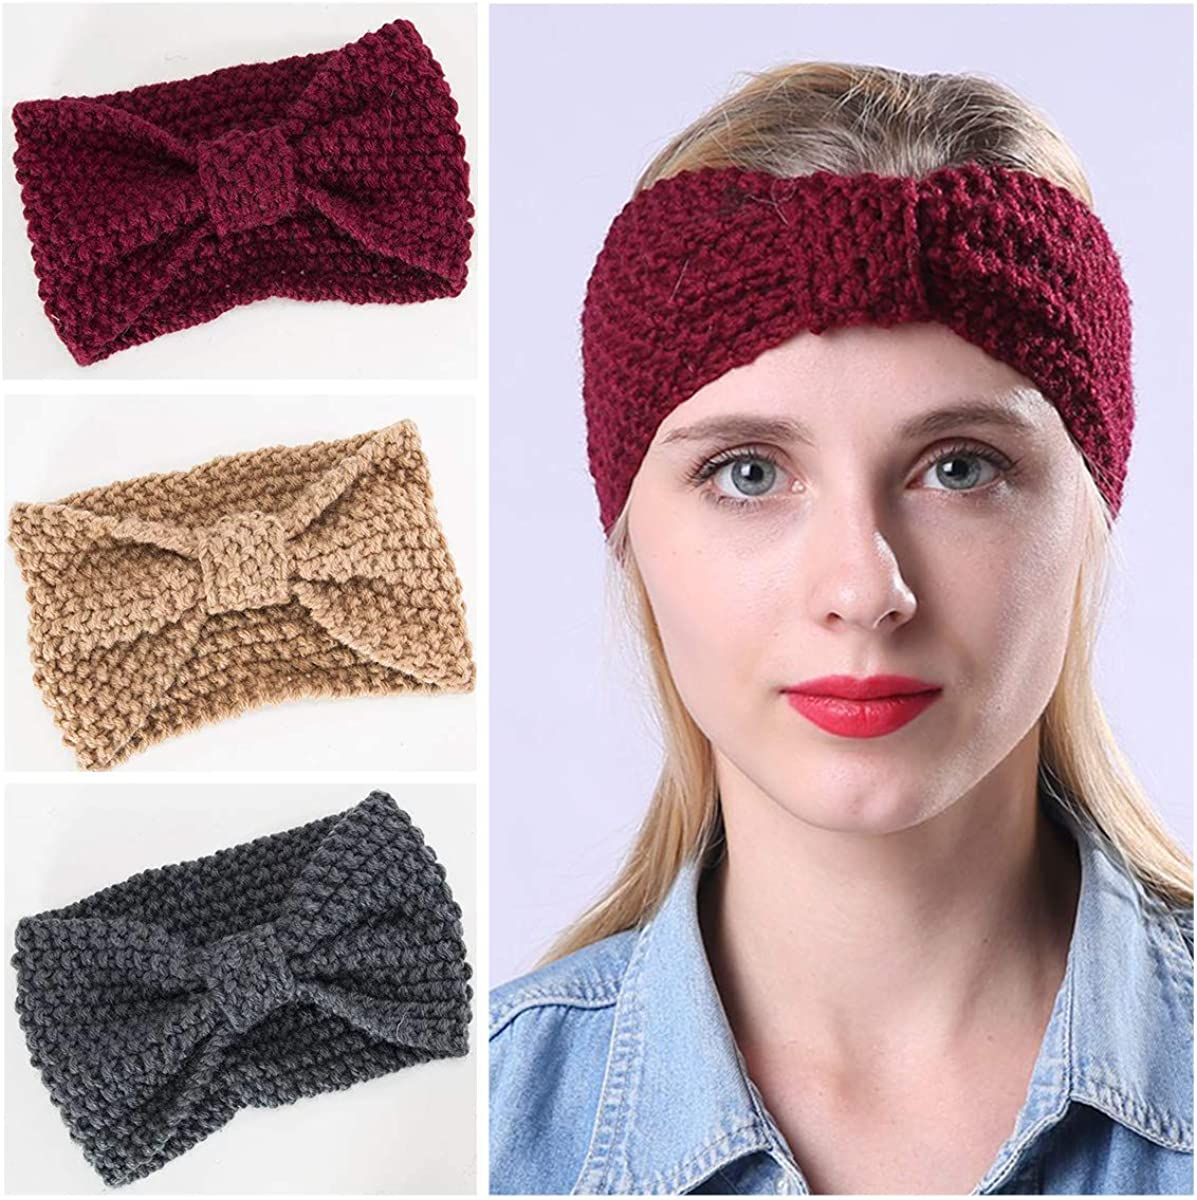 3 Pcs Ear Warmers Headbands...